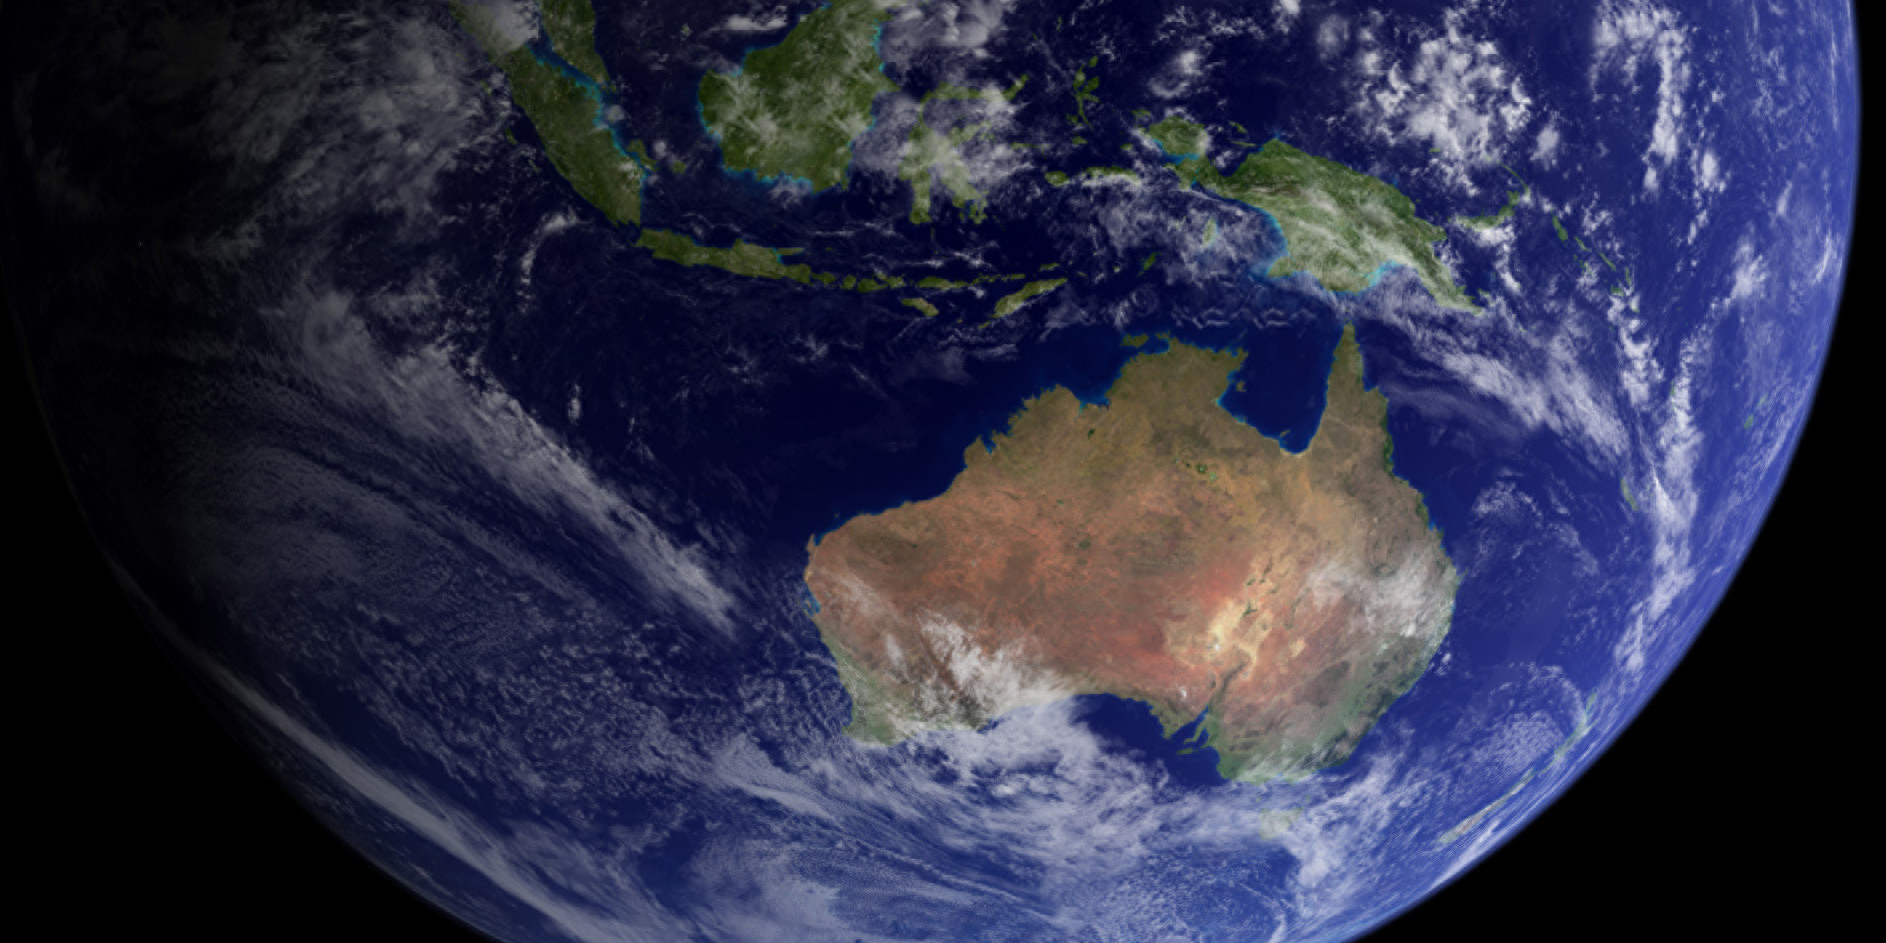 Image of the earth from space with a focus on Australia